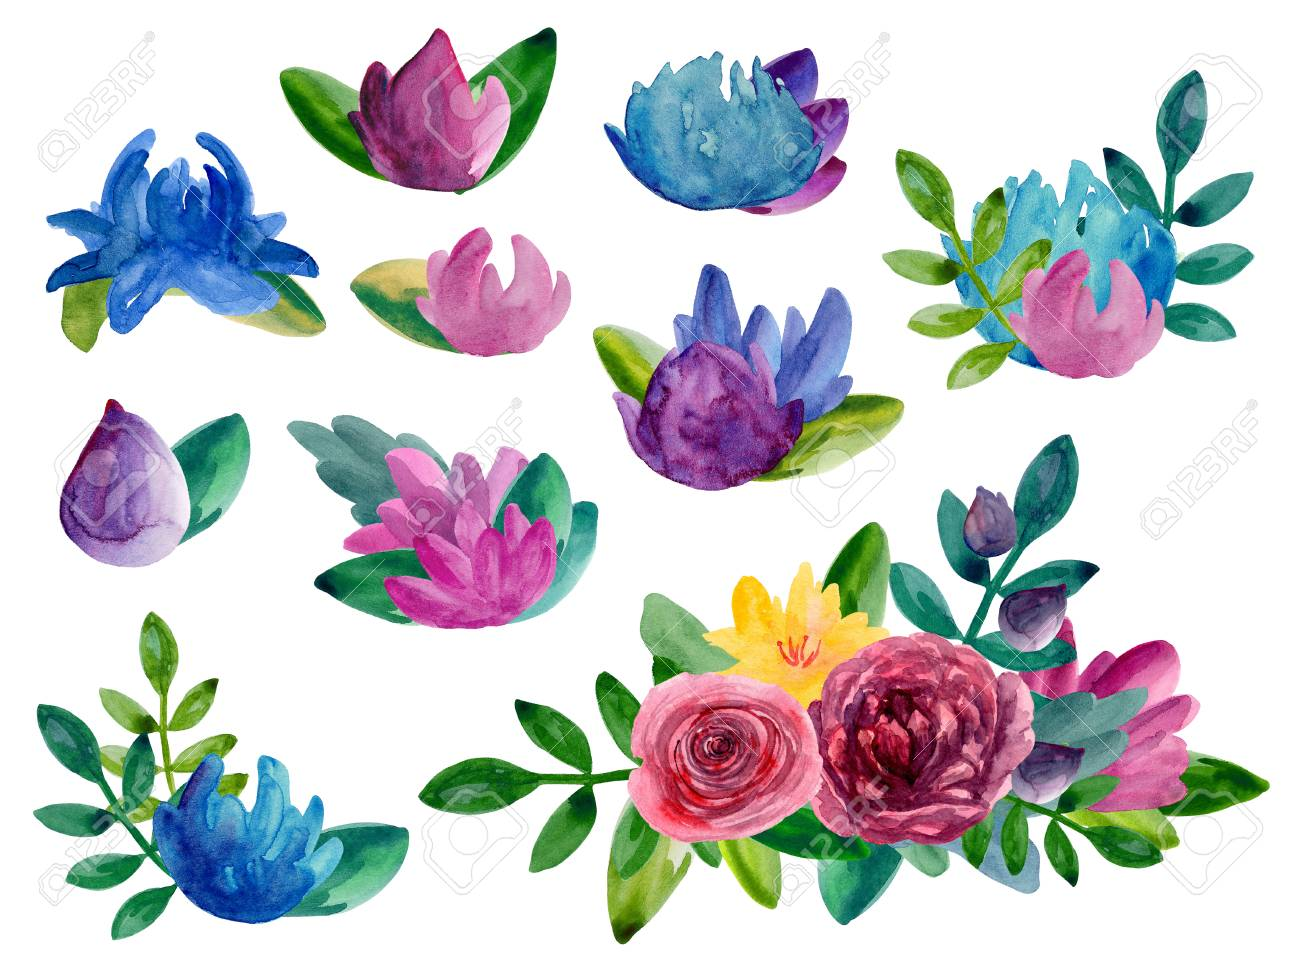 Watercolor abstract flowers bouquets clipart floral arrangement stock photo watercolor abstract flowers bouquets clipart floral arrangement isolated izmirmasajfo